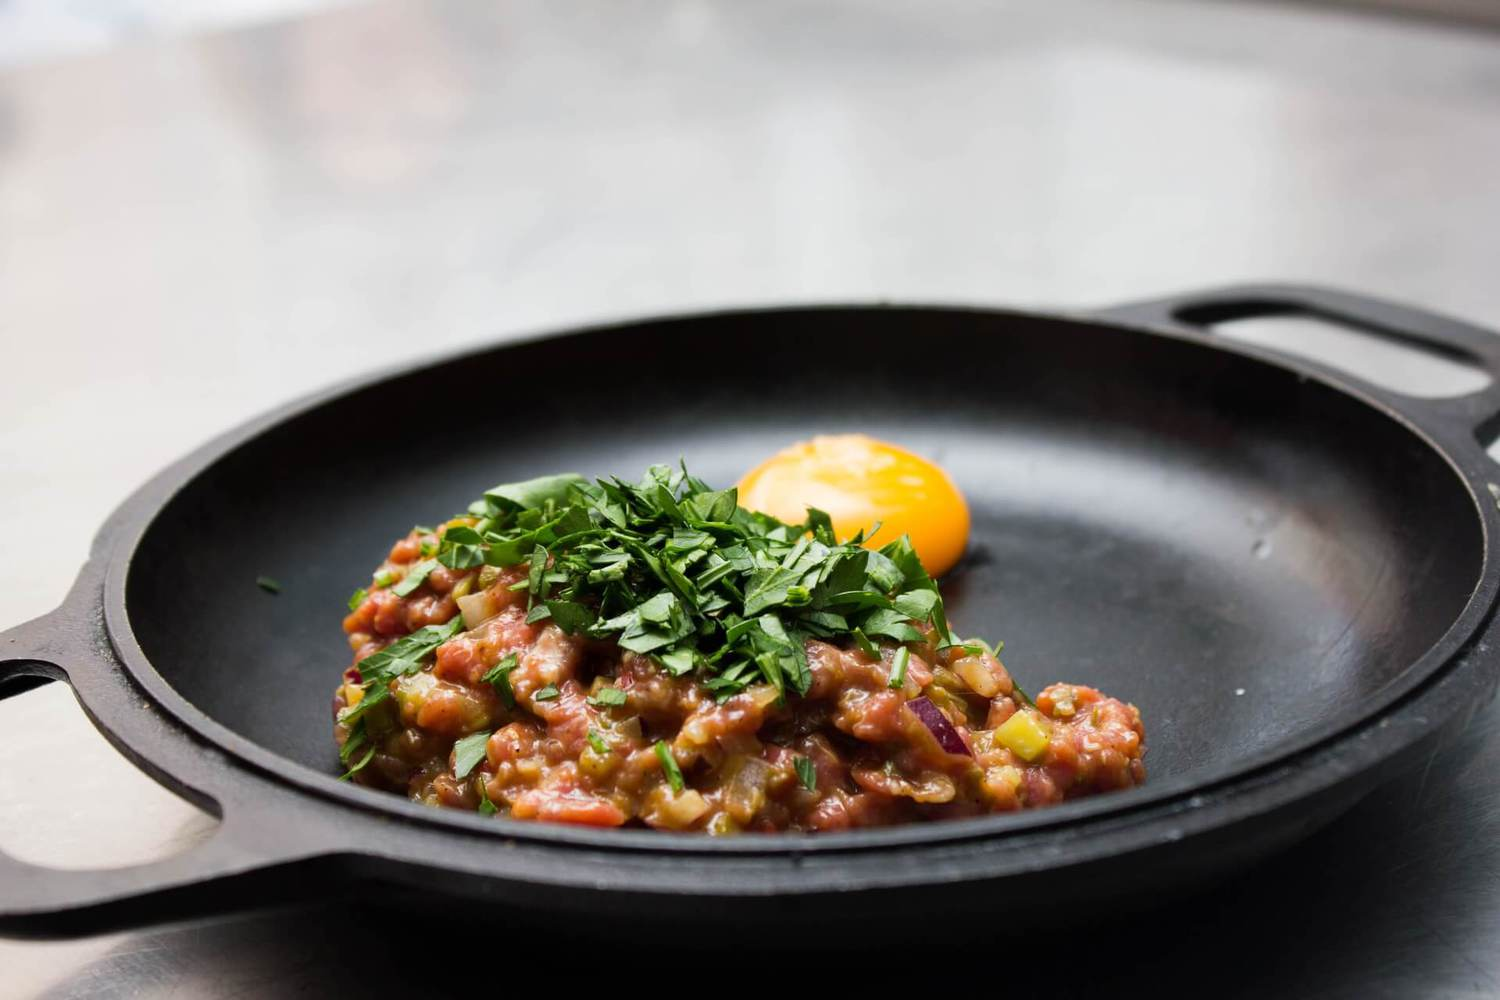 a stir fry and an egg cooking on a black griddle